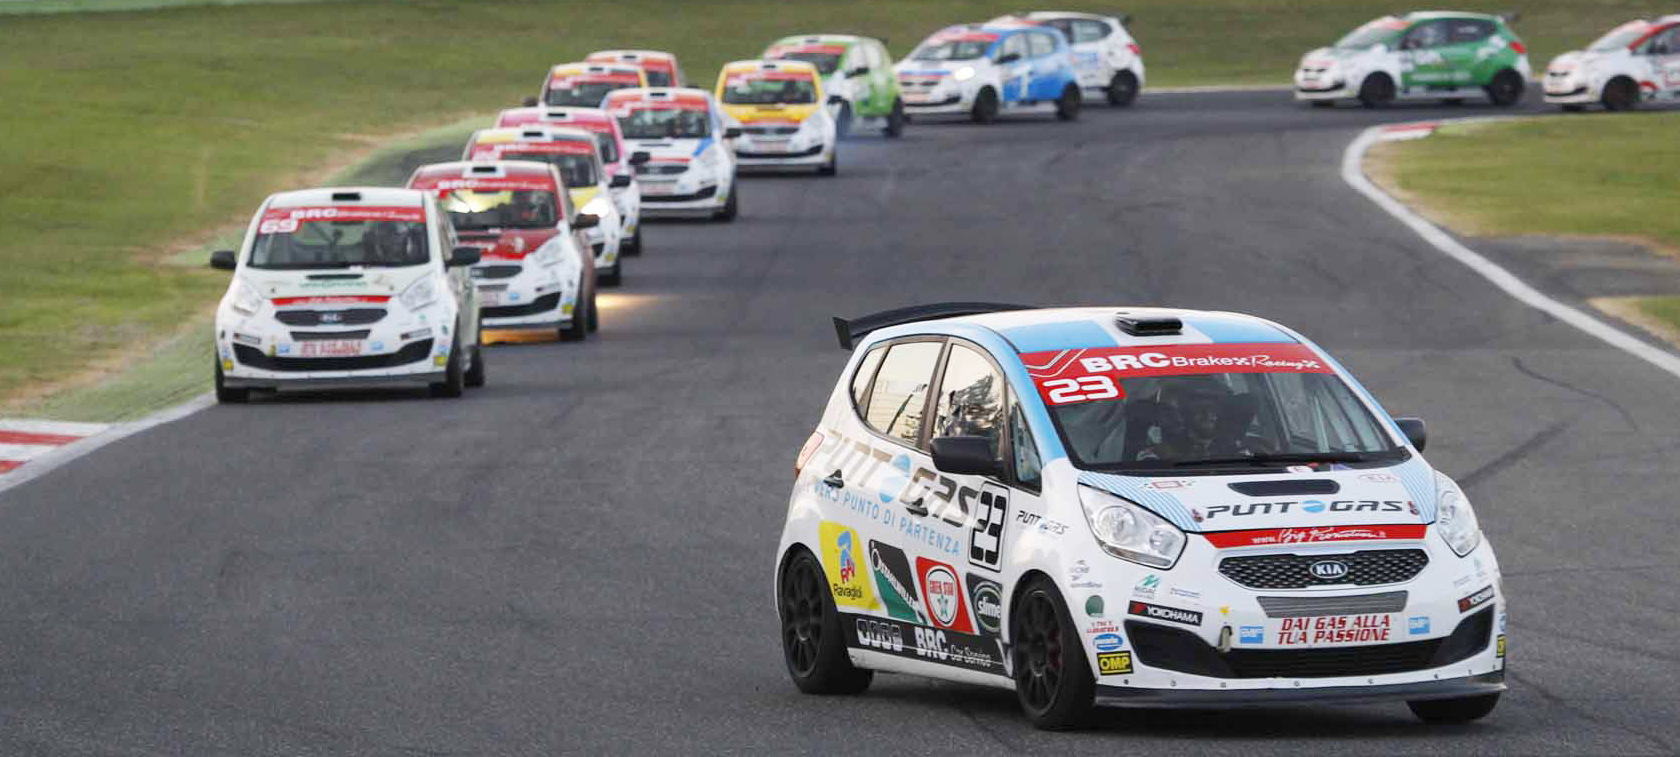 Green Hybrid Cup 2015 at Vallelunga